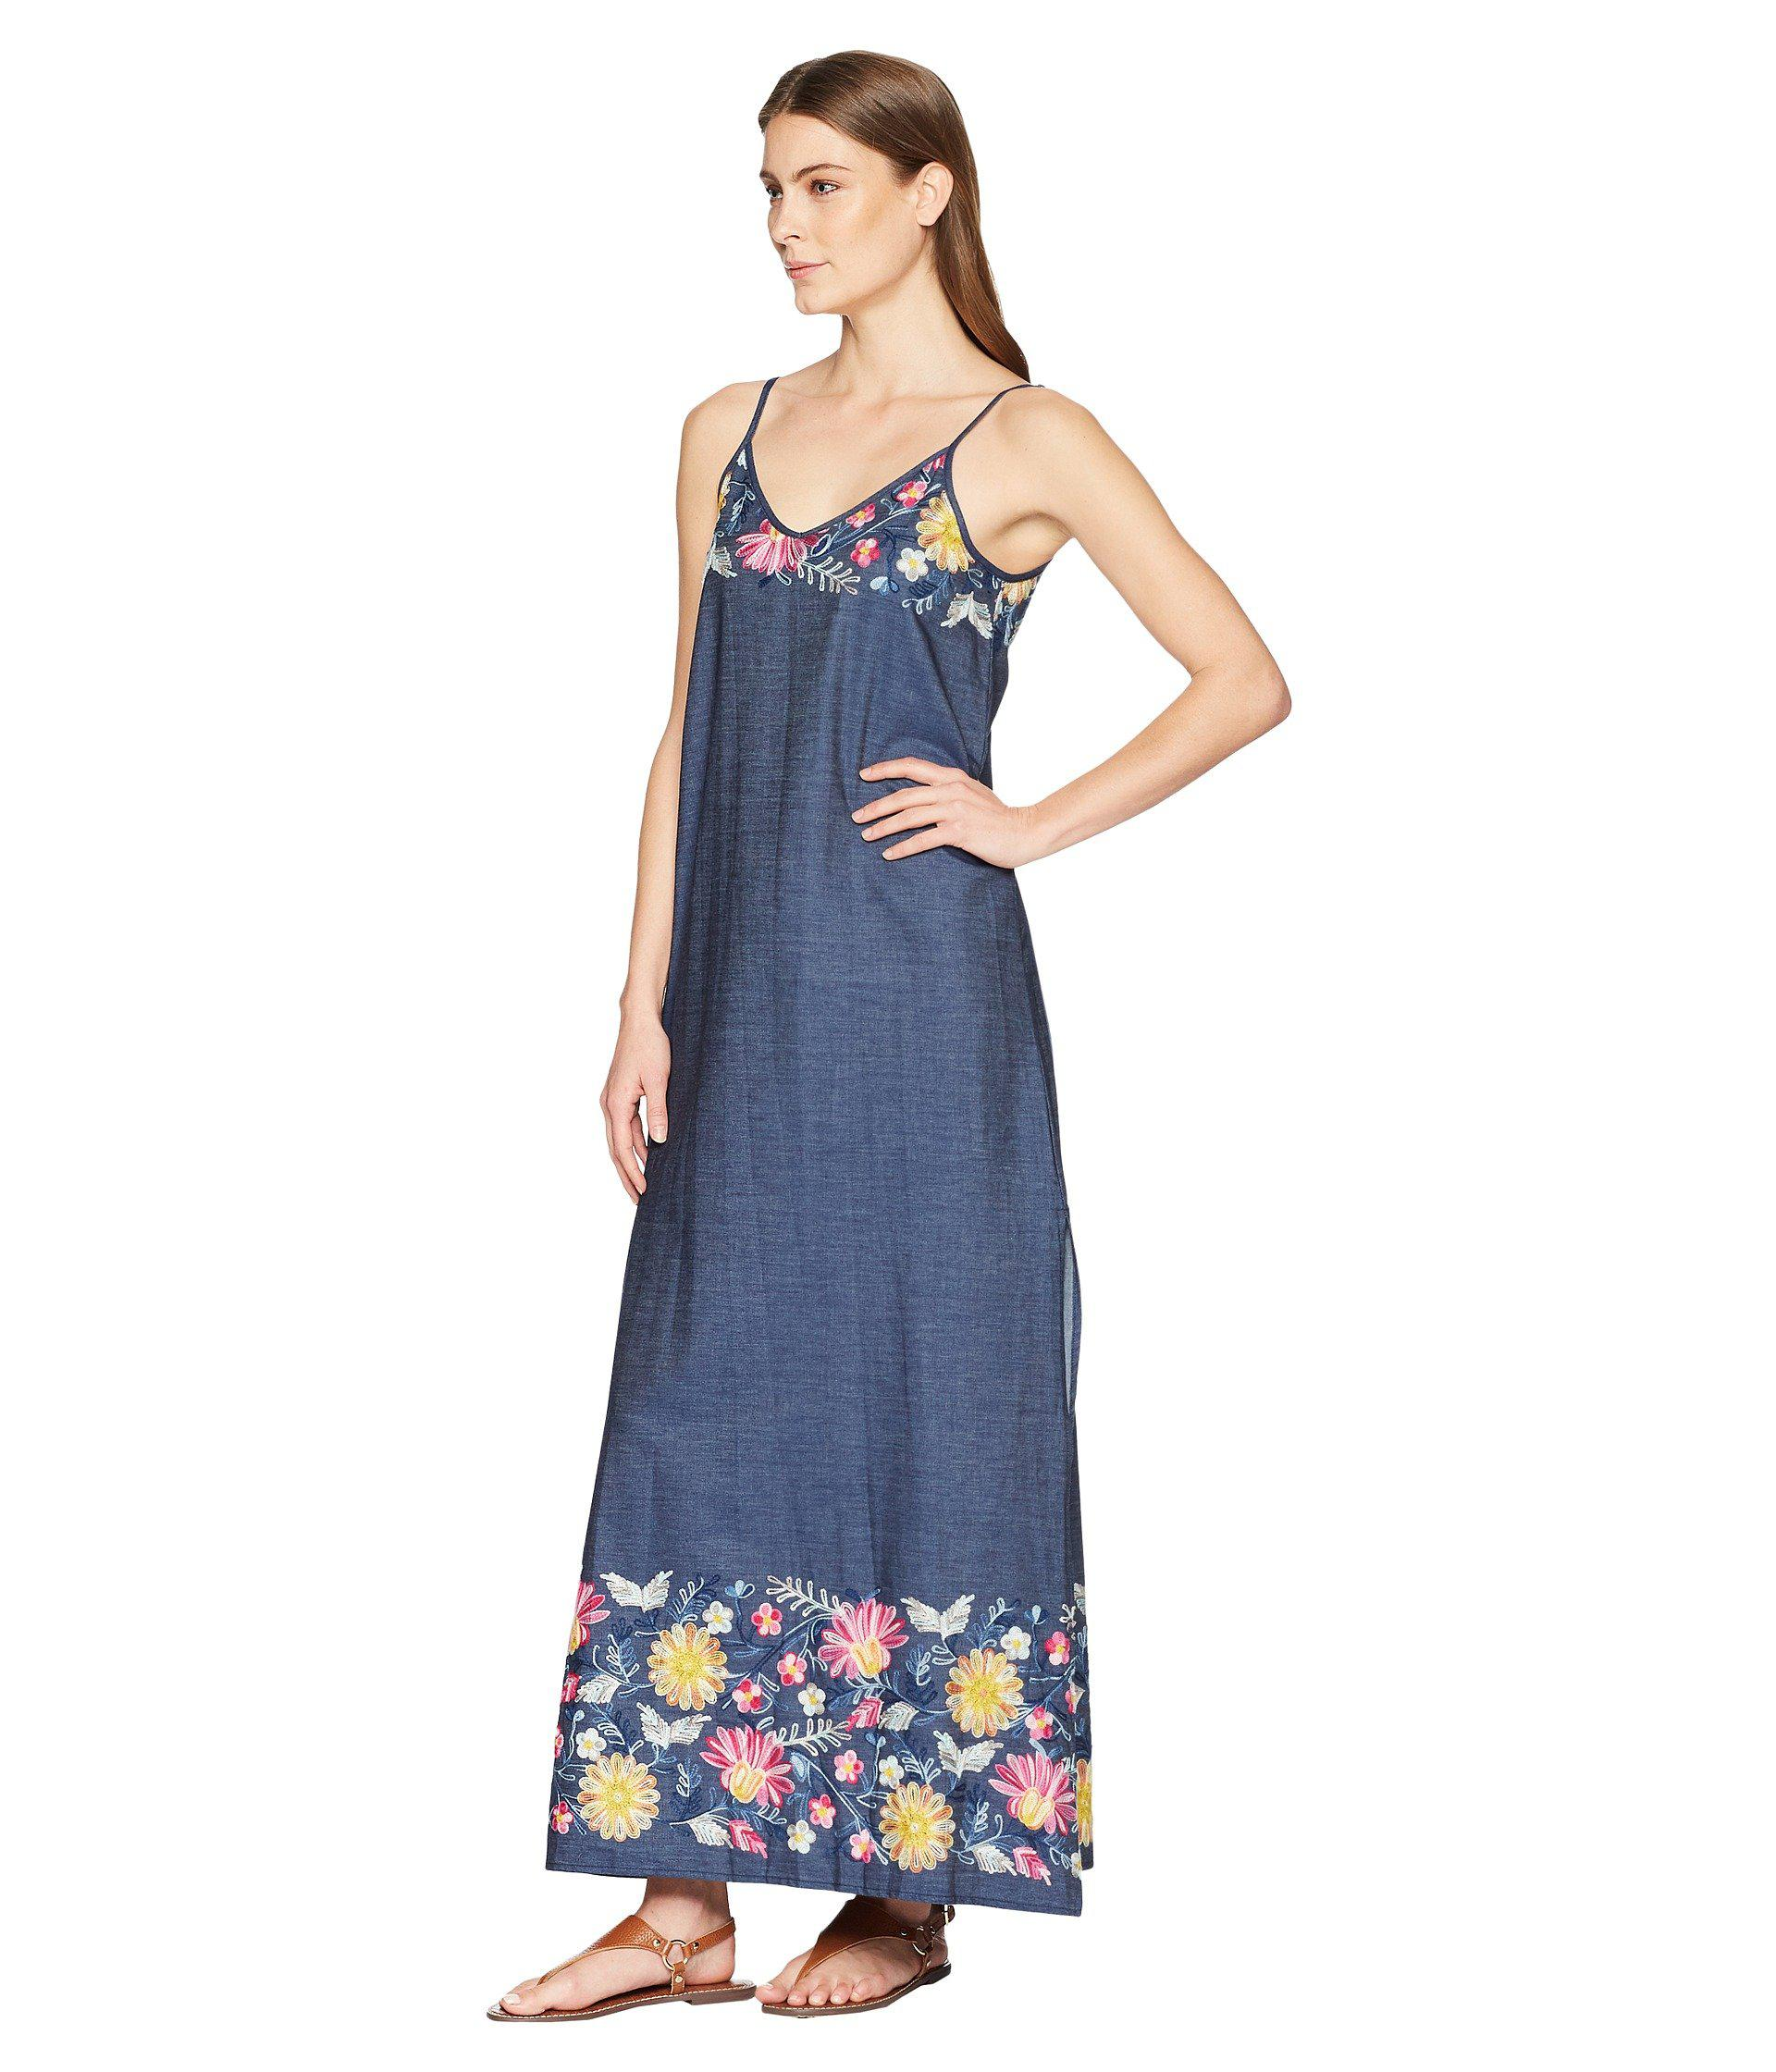 e00bc7c640b Lyst - Karen Kane Embroidered Maxi Dress in Blue - Save 22%